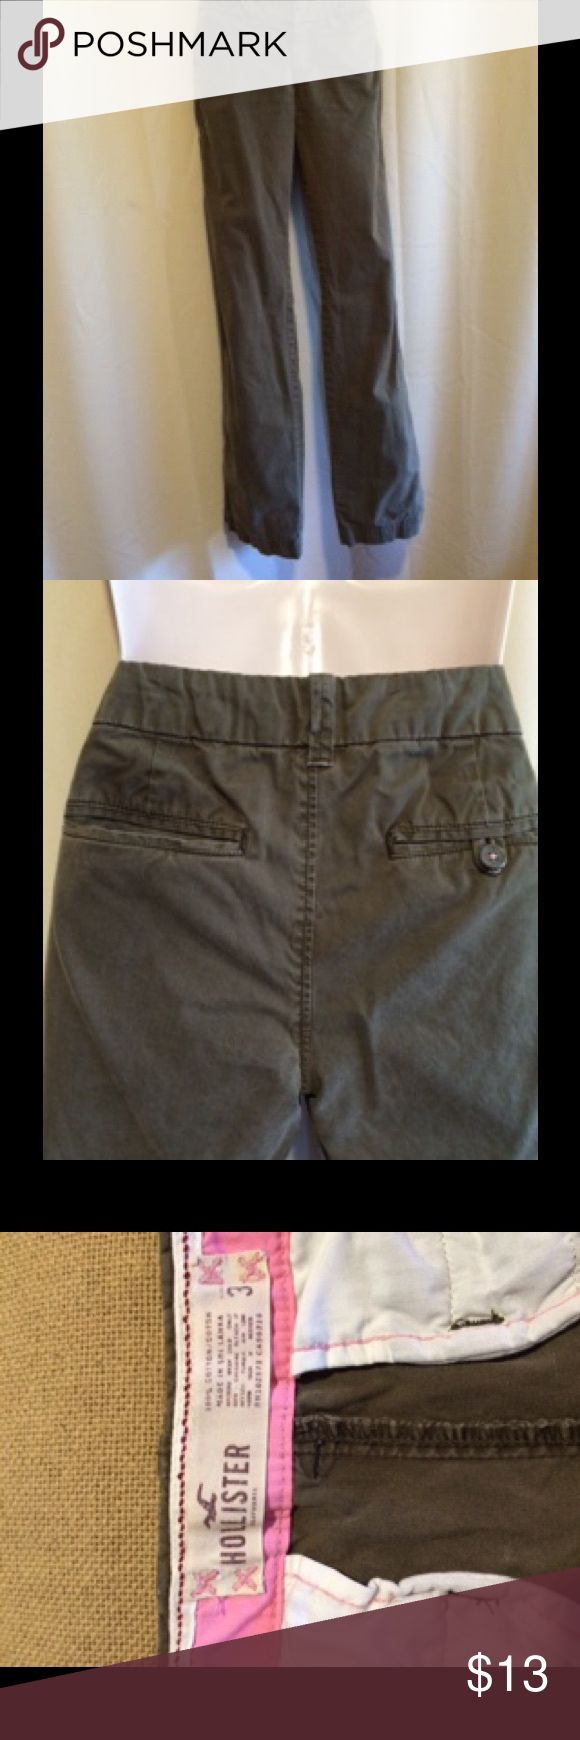 """HOLLISTER olive/army green slacks Versatile slacks for work or play. Can be dressed up with heels do dressed down with boots or sneakers. INSEAM is 32"""" Hollister Pants Trousers"""